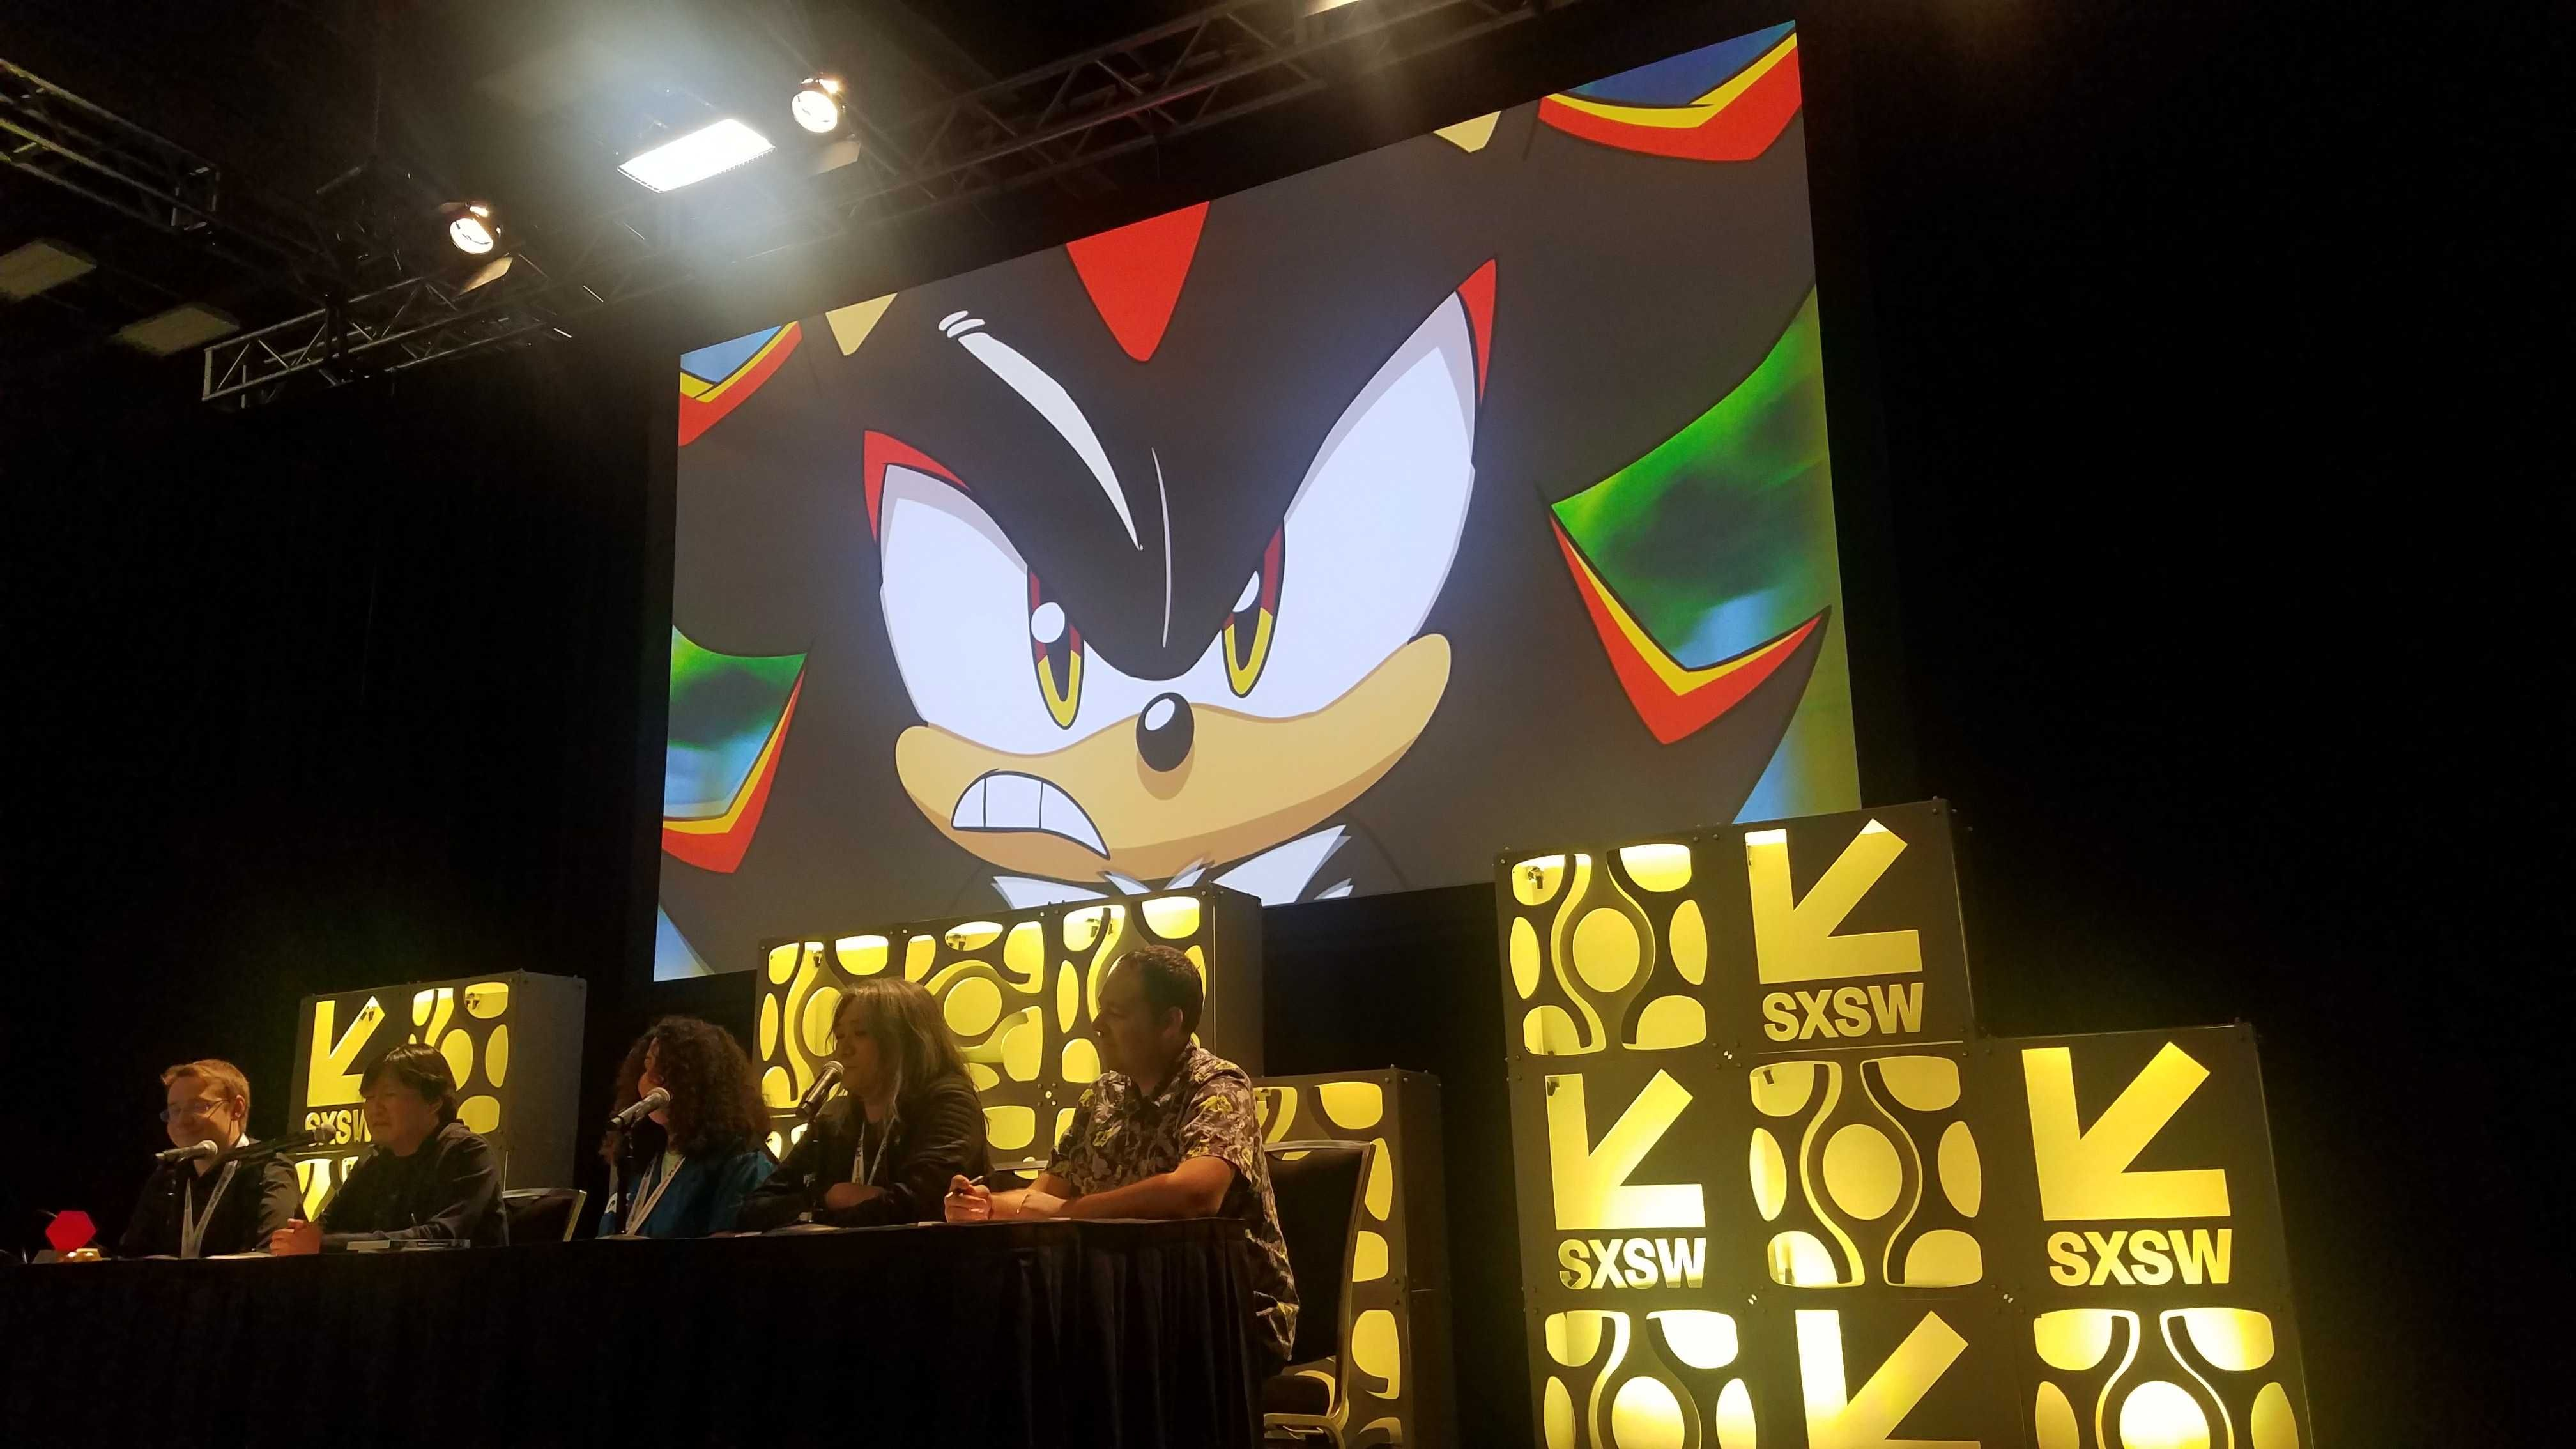 Team Sonic Racing Overdrive animated feature reveal SXSW 2019 gaming expo